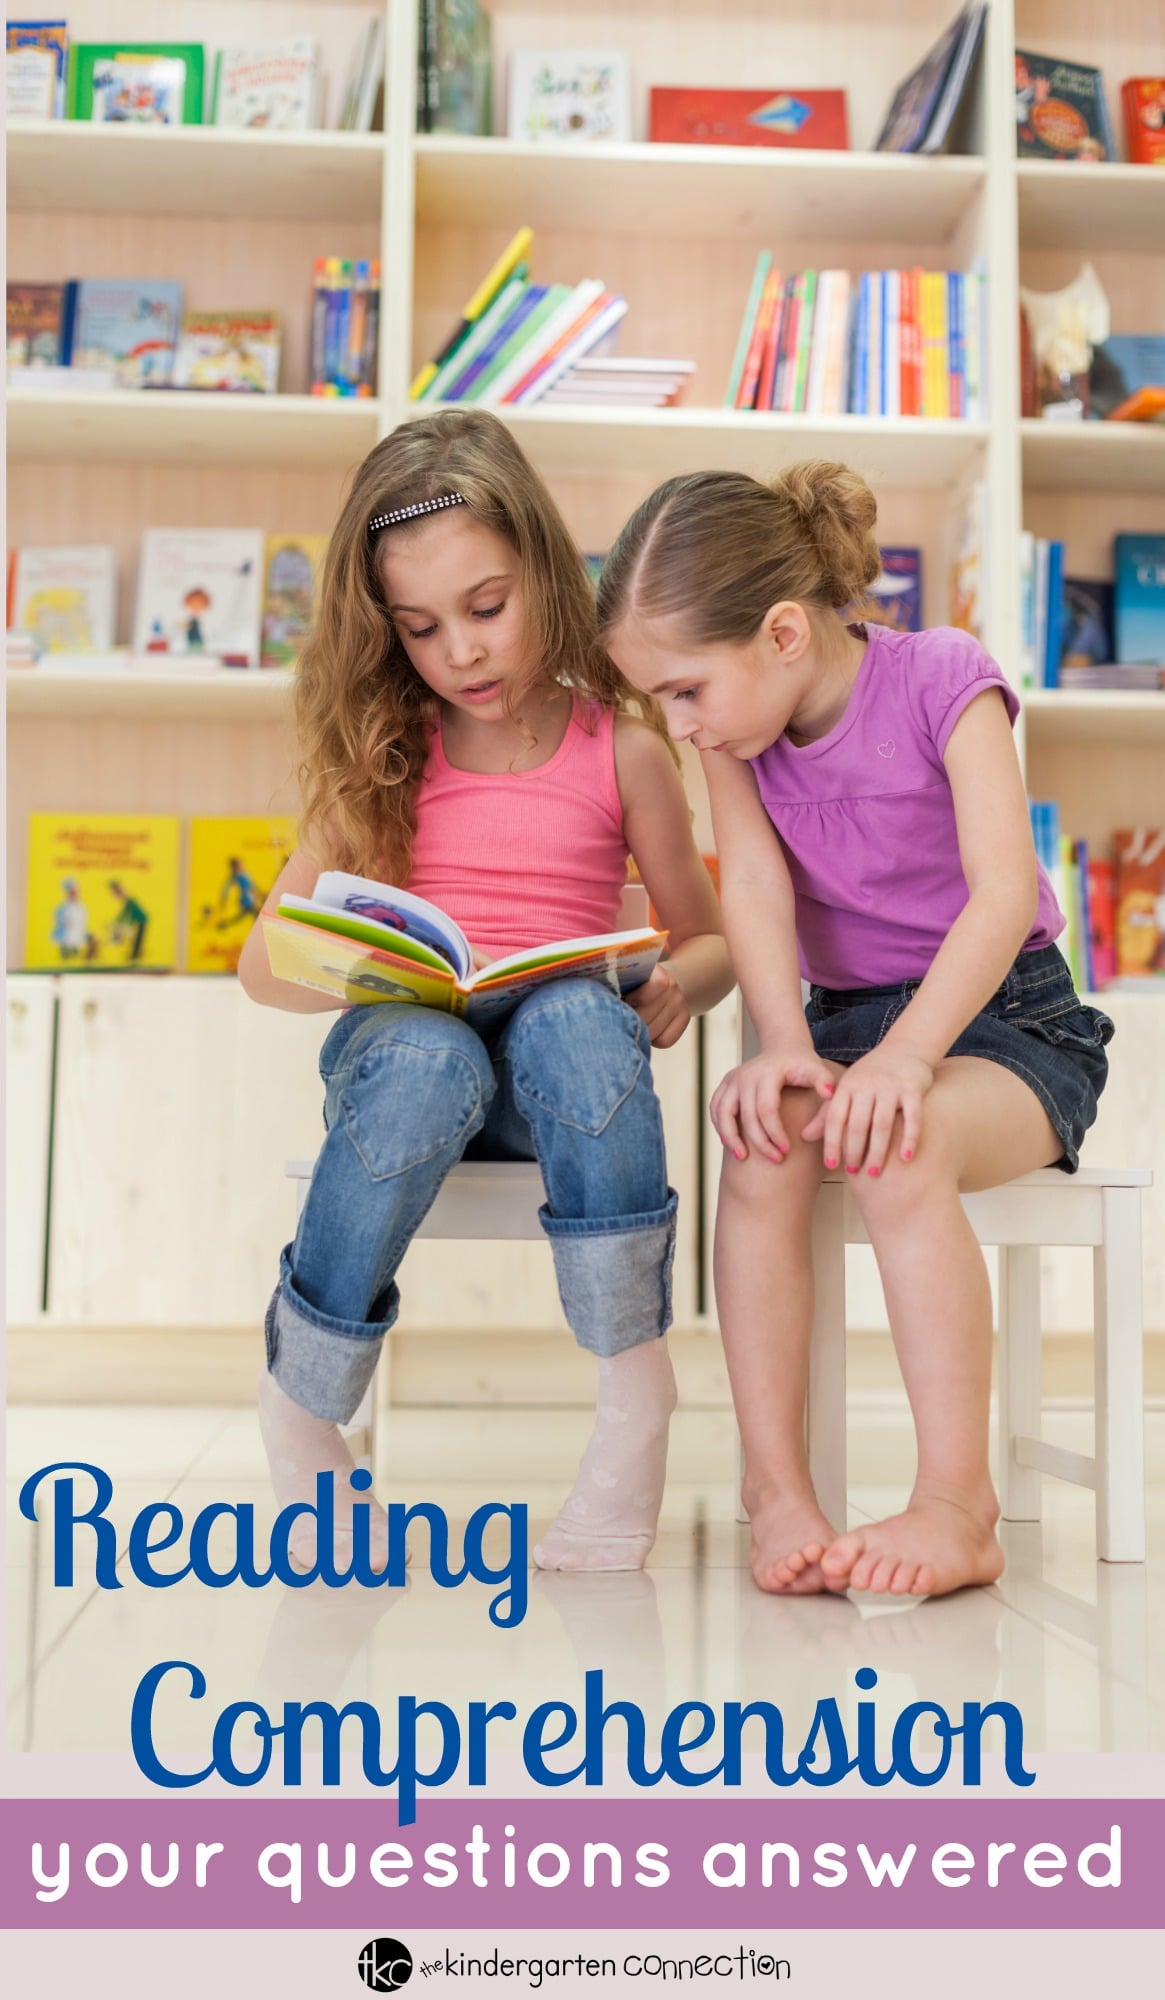 Everything you need to know about reading comprehension - what cmprehension means and how to effectively teach it in elementary school